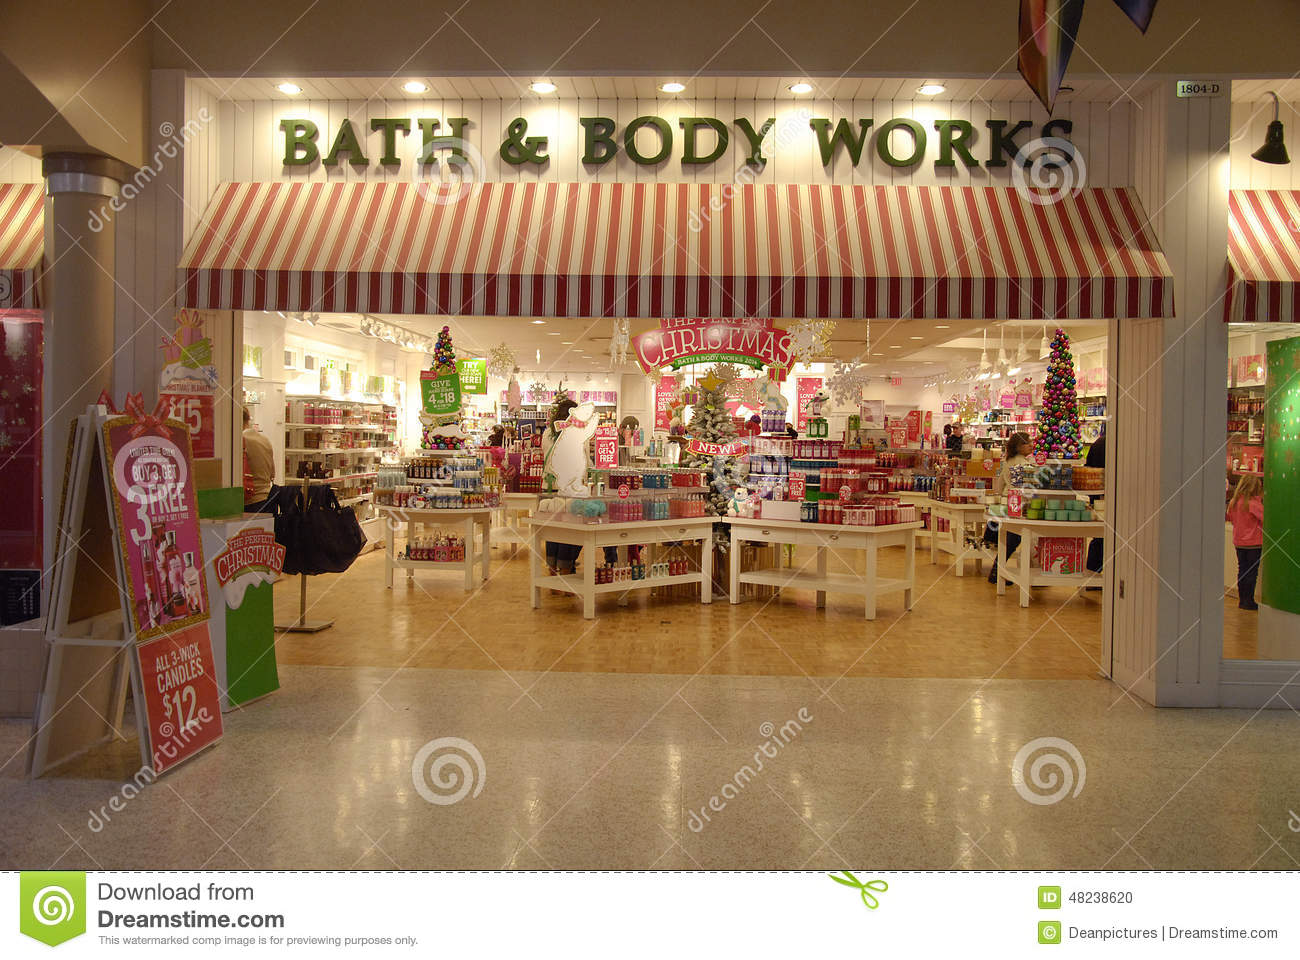 Clipart Of Bath And Body Works.